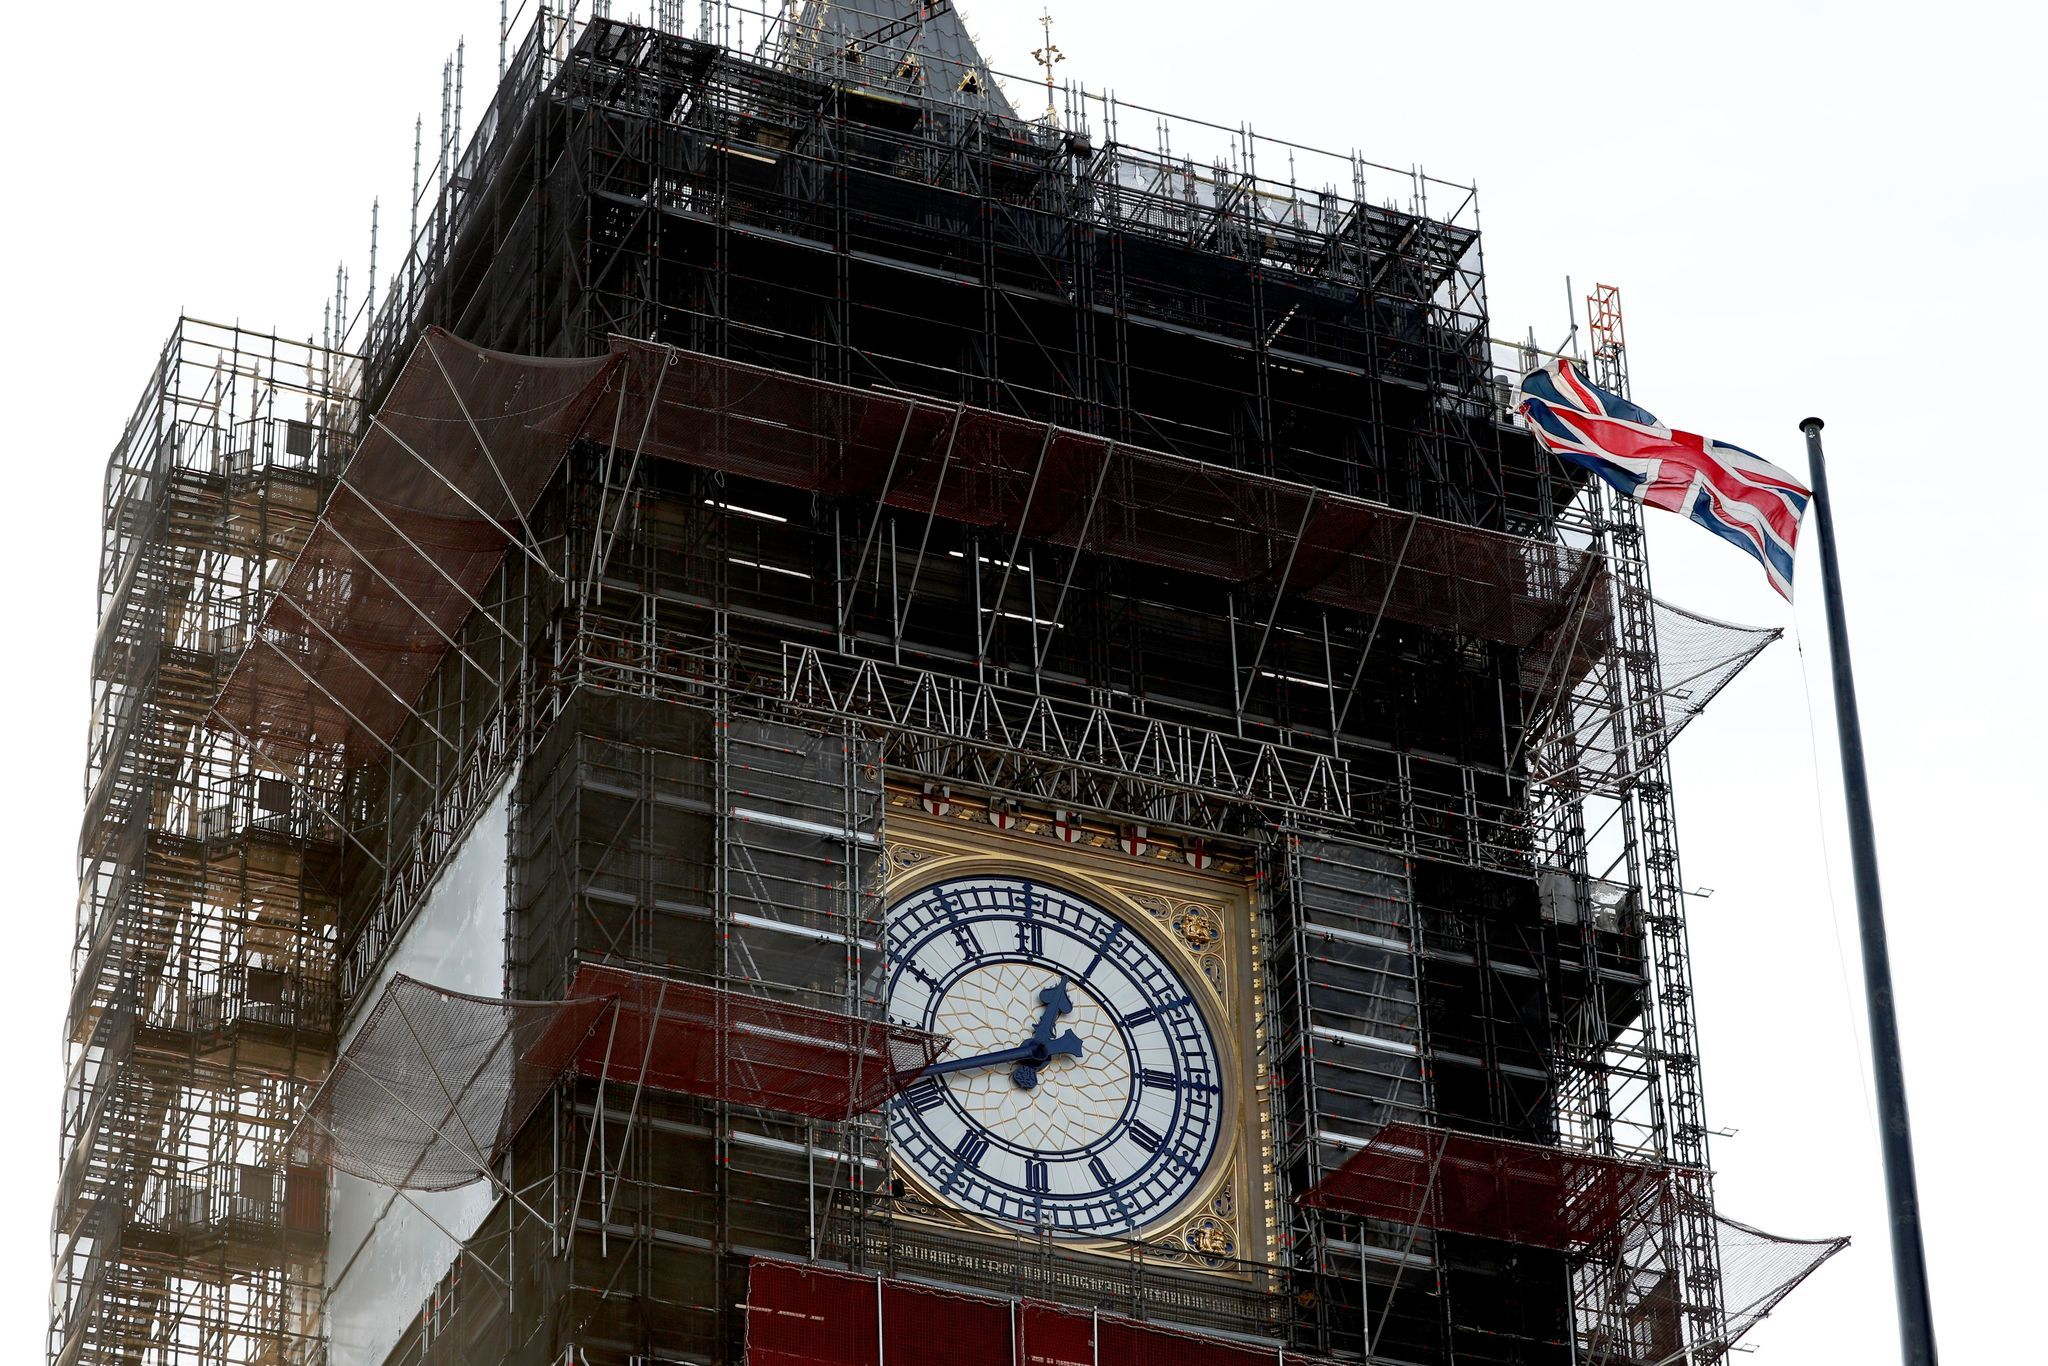 Big Ben tower more badly damaged by Nazi bombing than previously thought